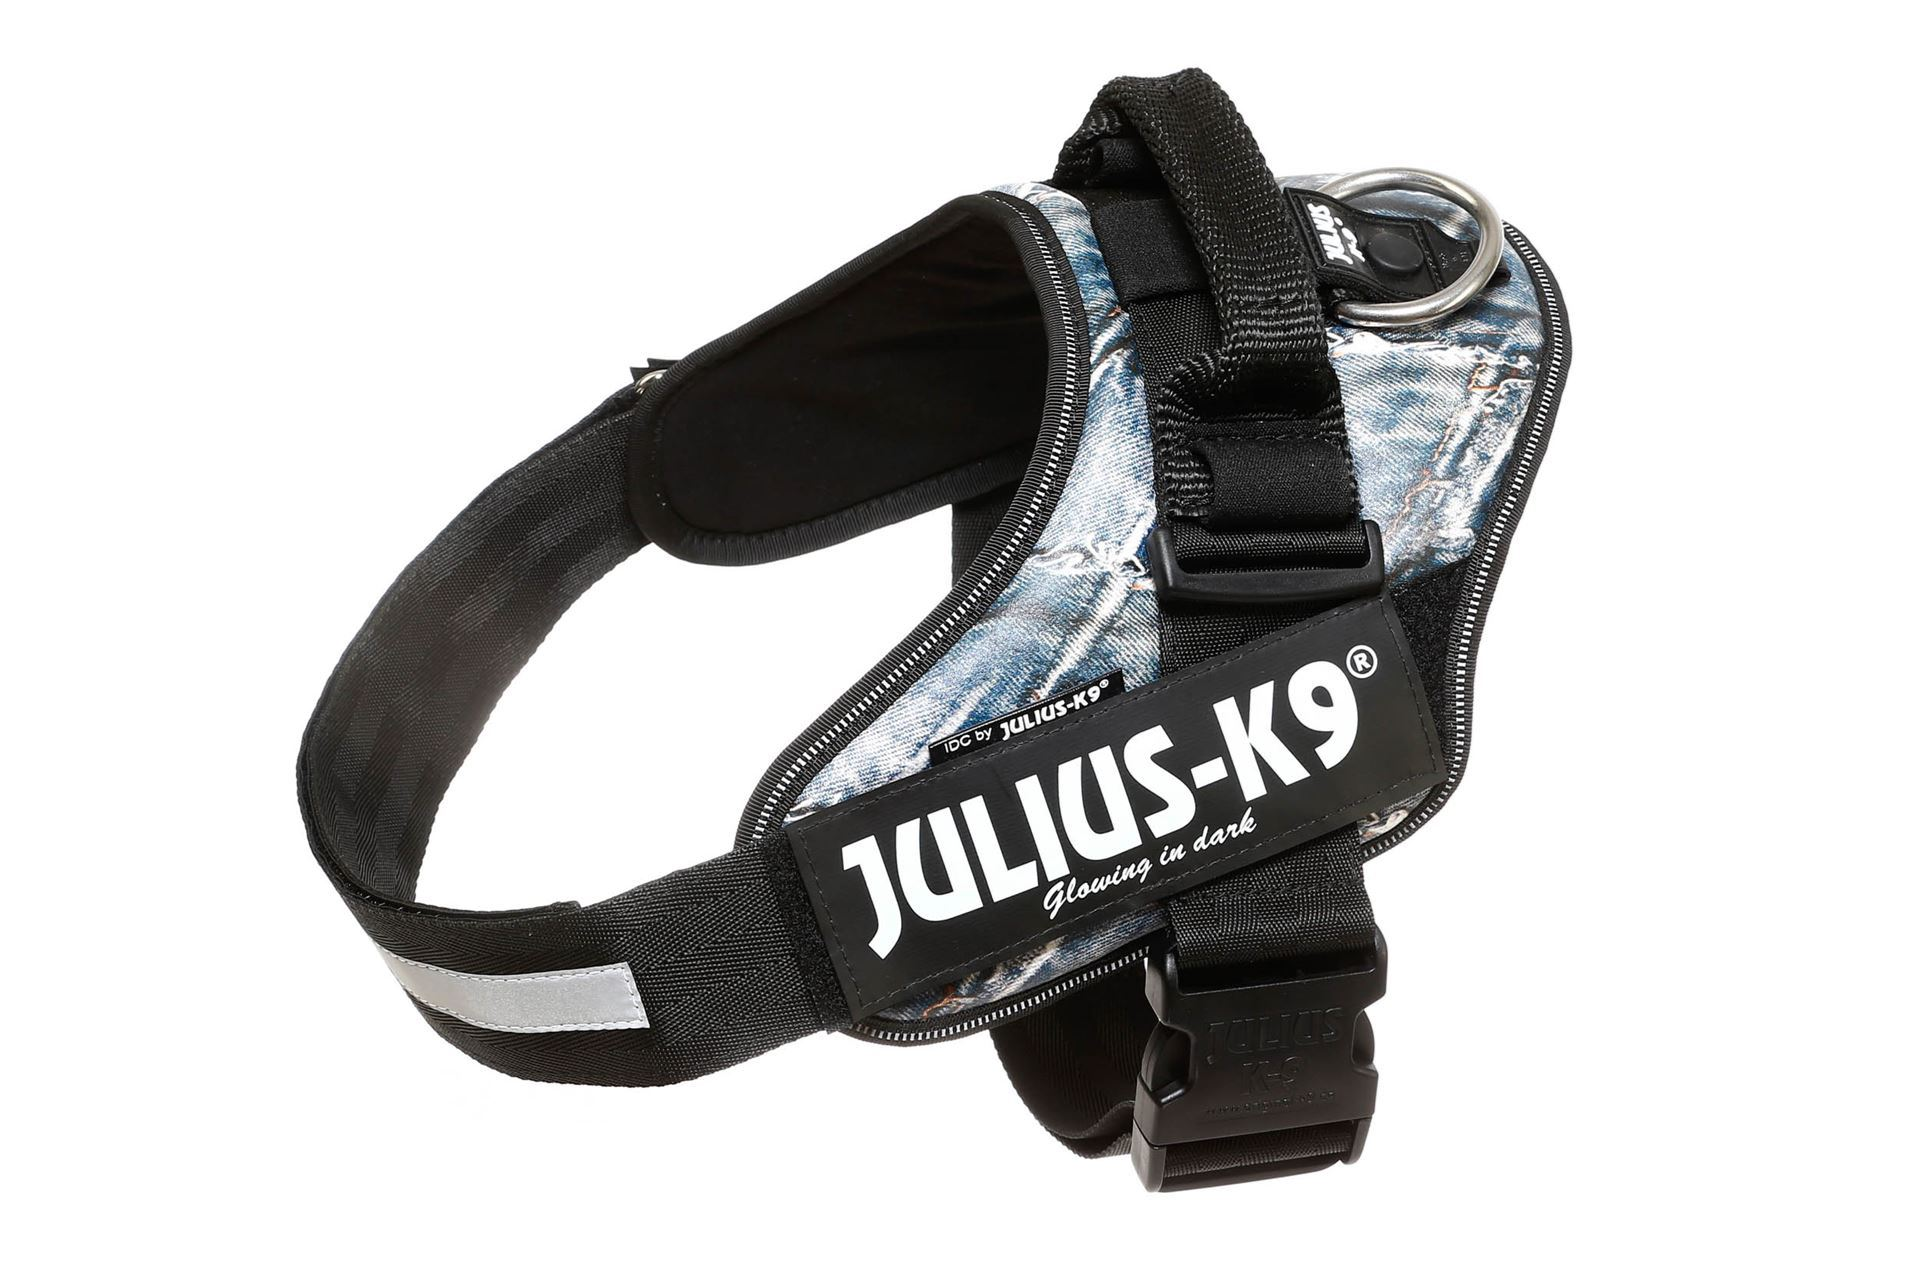 julius k9 idc harness review